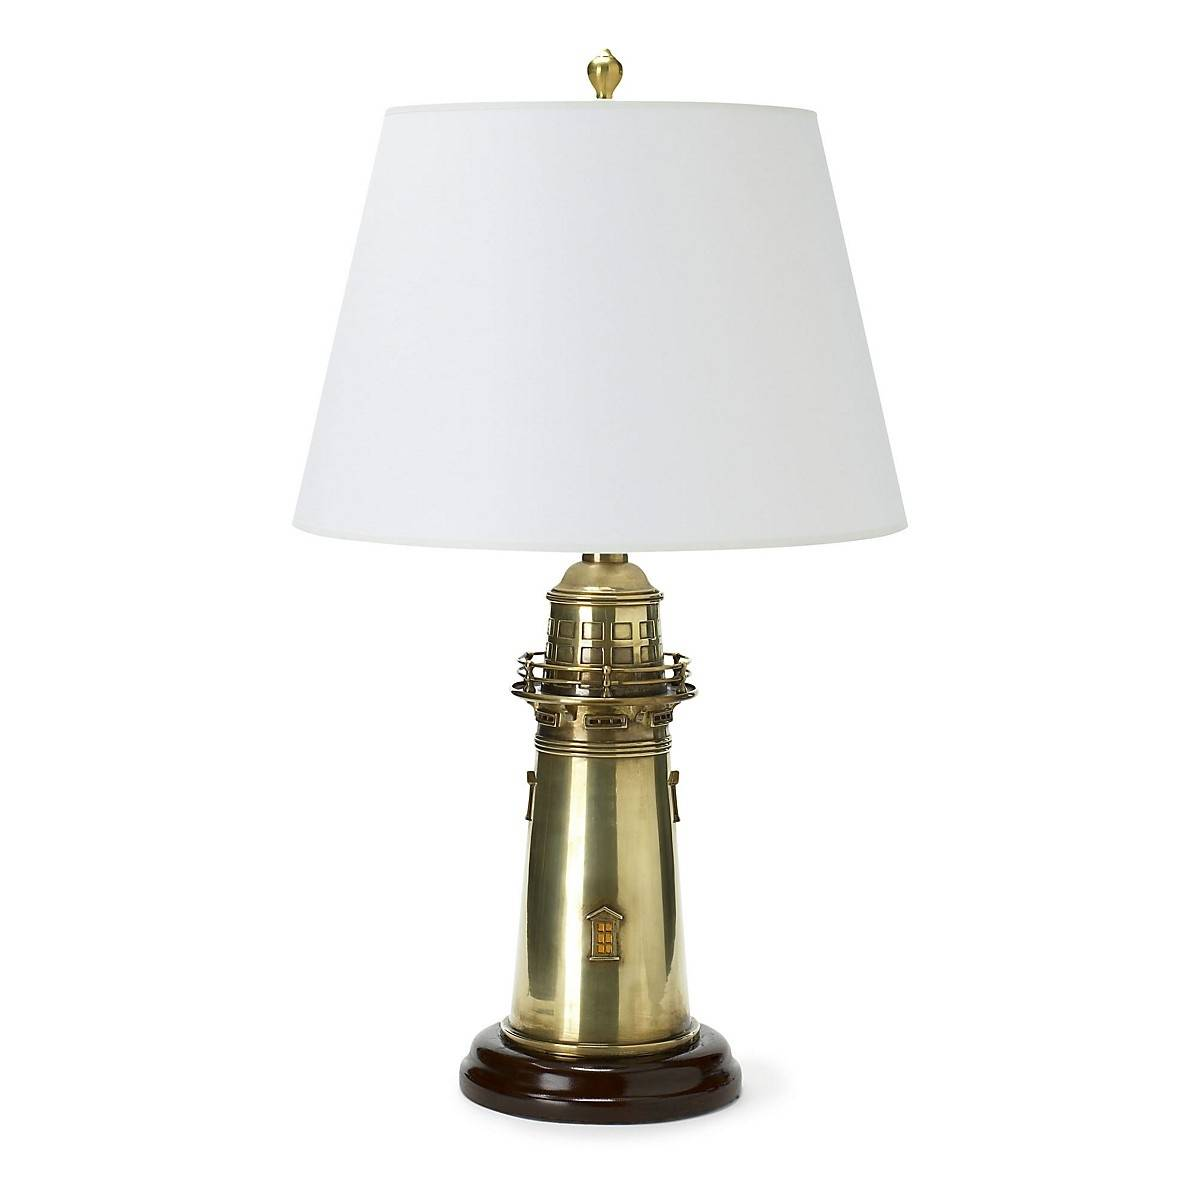 Lighthouse Table Lamp Ralph Lauren